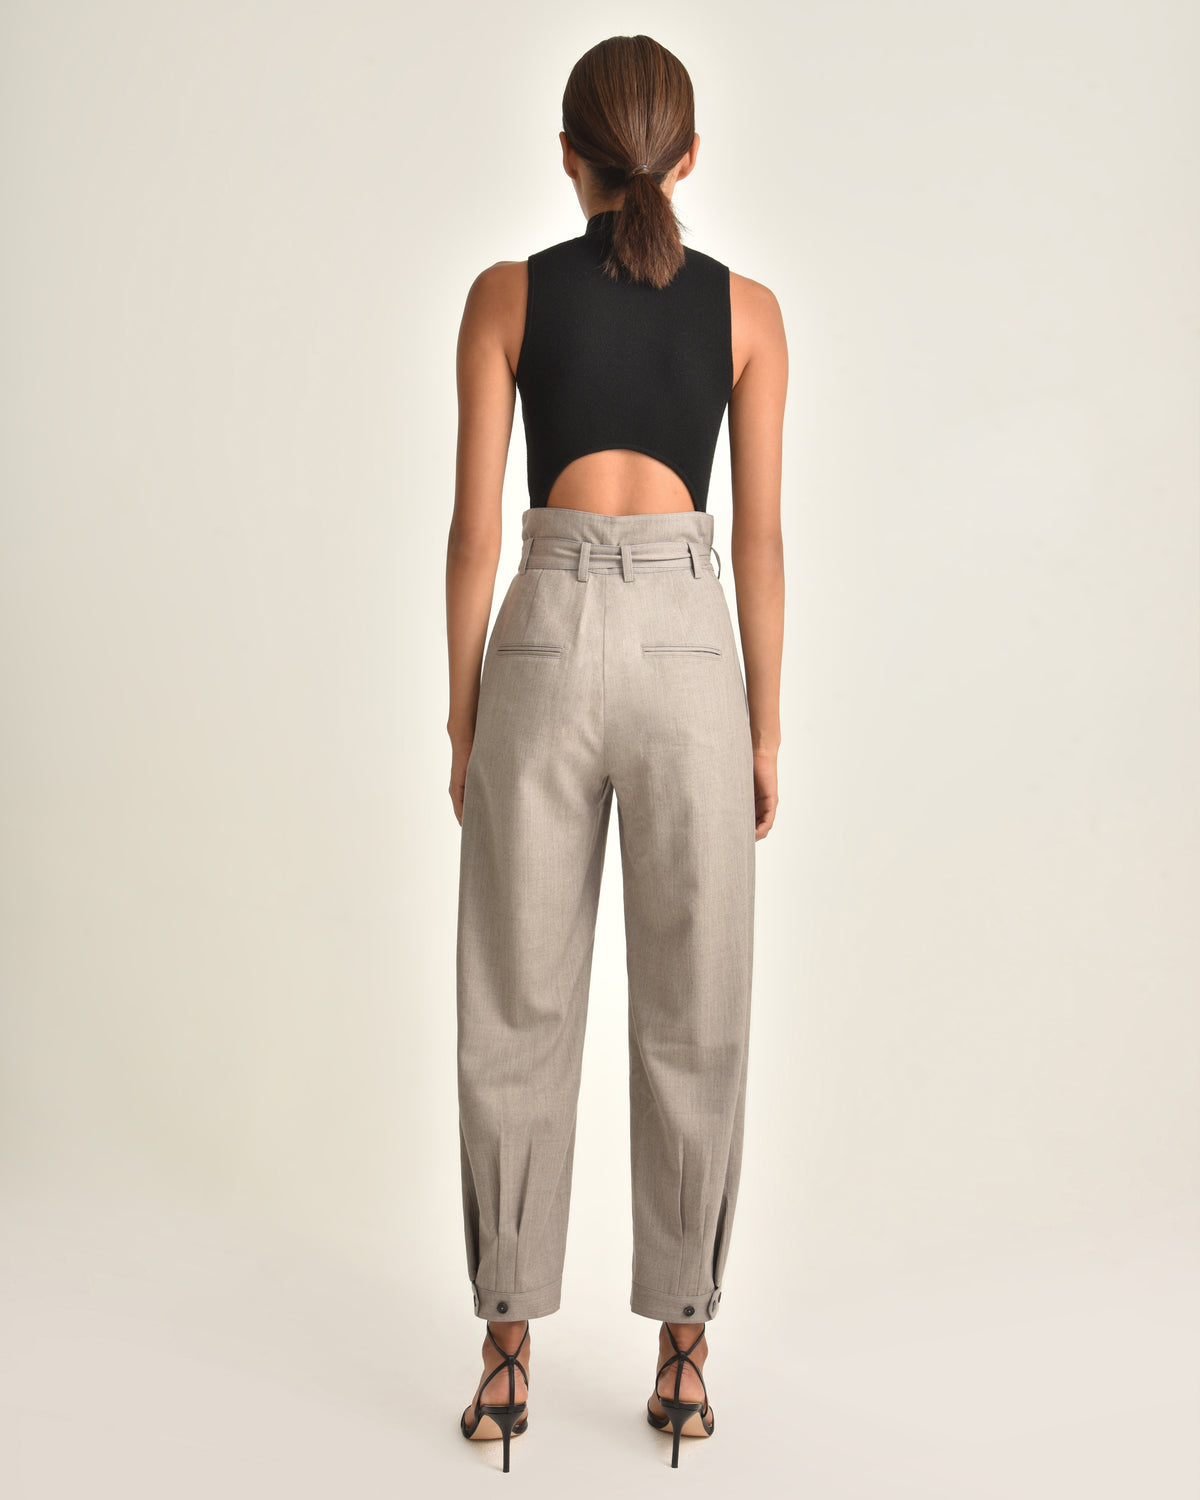 Billy Retro Pops Trouser_Taupe_Back